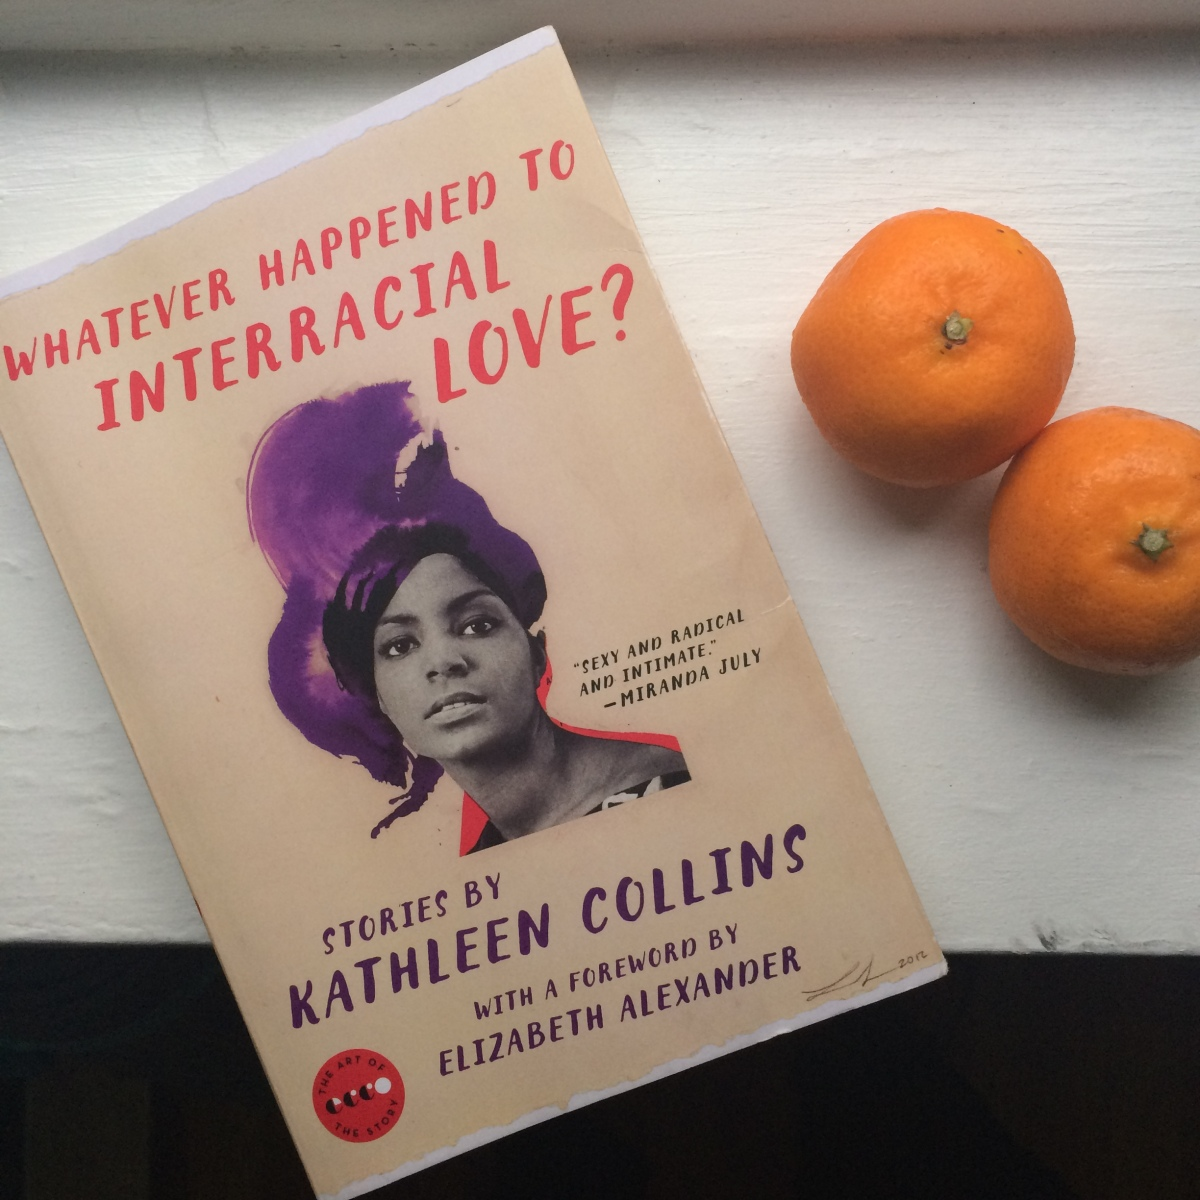 Five Things about Whatever Happened to Interracial Love? by KathleenCollins